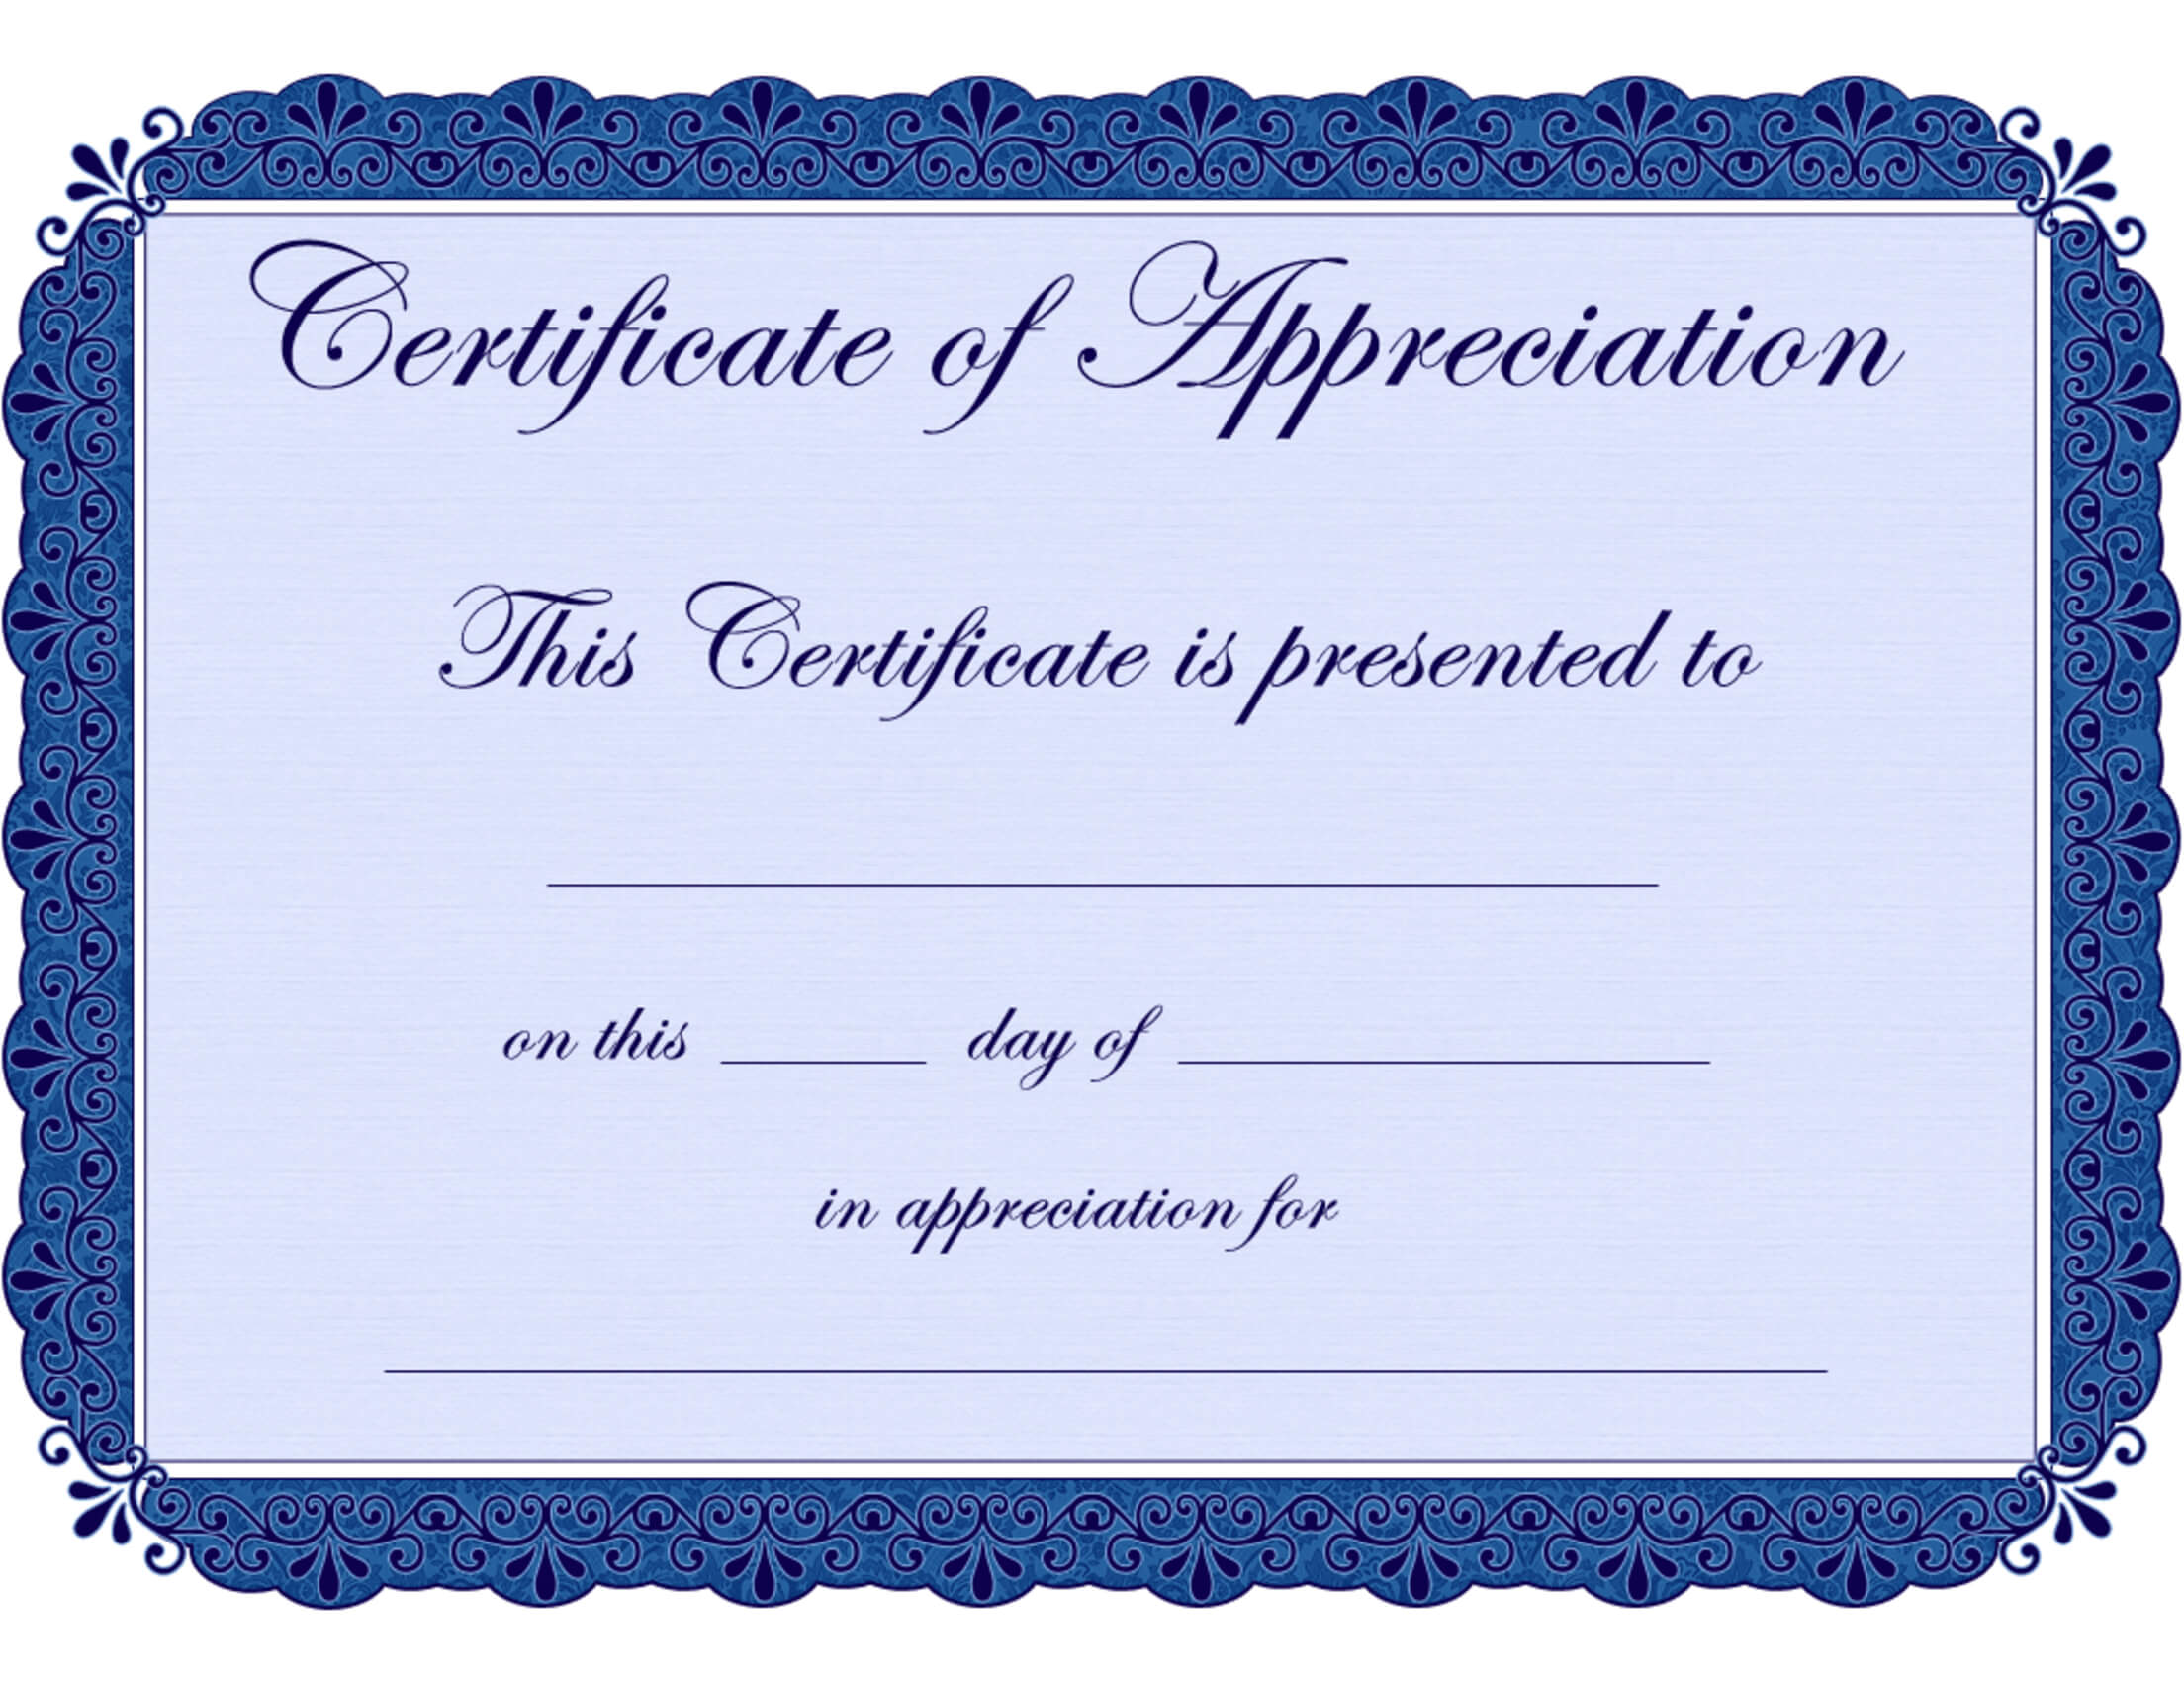 Free Printable Certificates Certificate Of Appreciation In Printable Certificate Of Recognition Templates Free